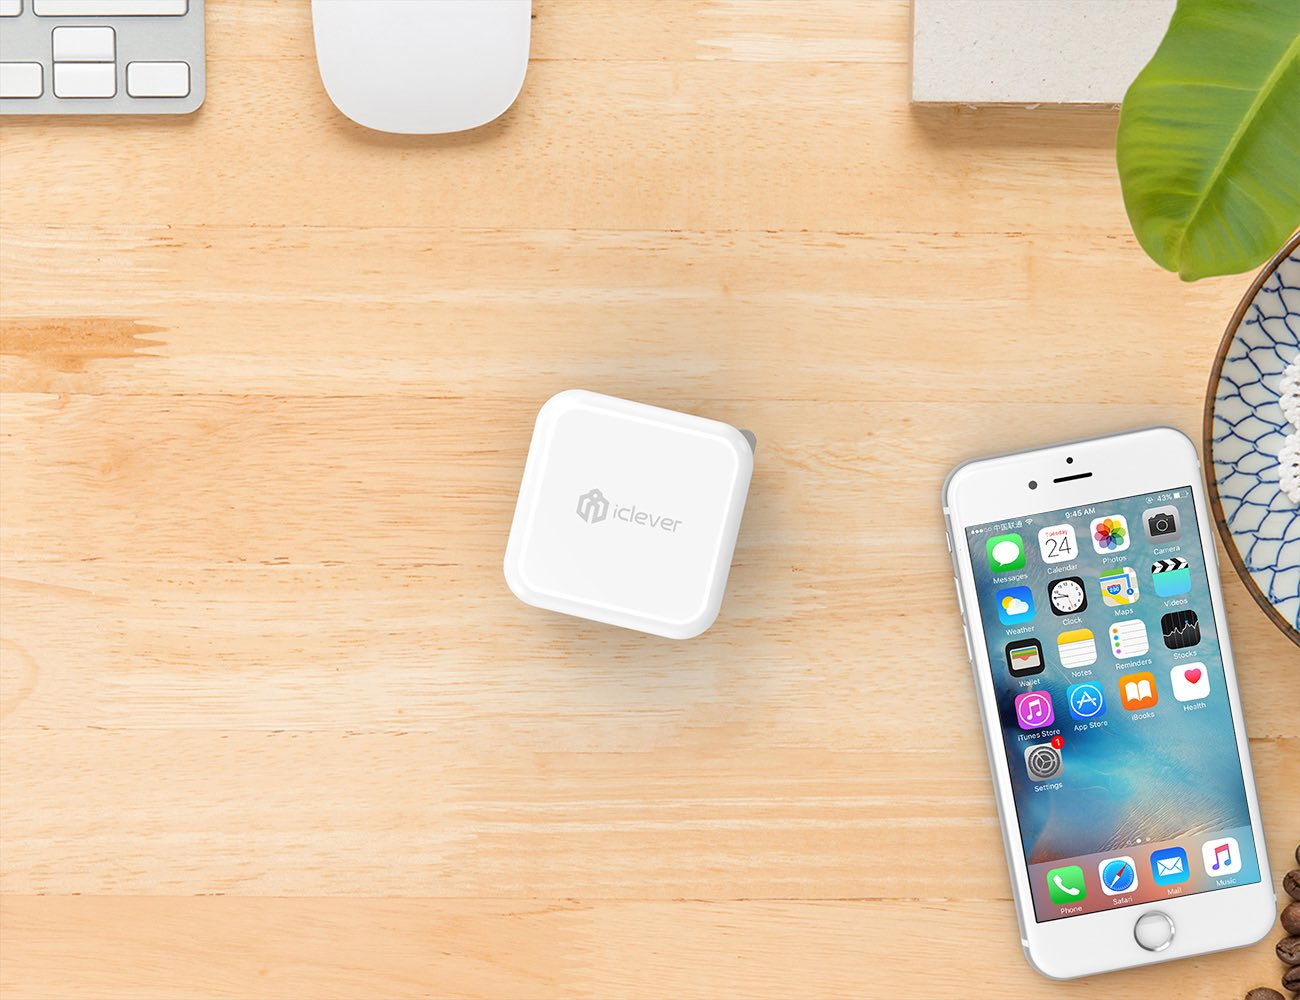 iClever BoostCube Dual USB Wall Charger with SmartID Technology